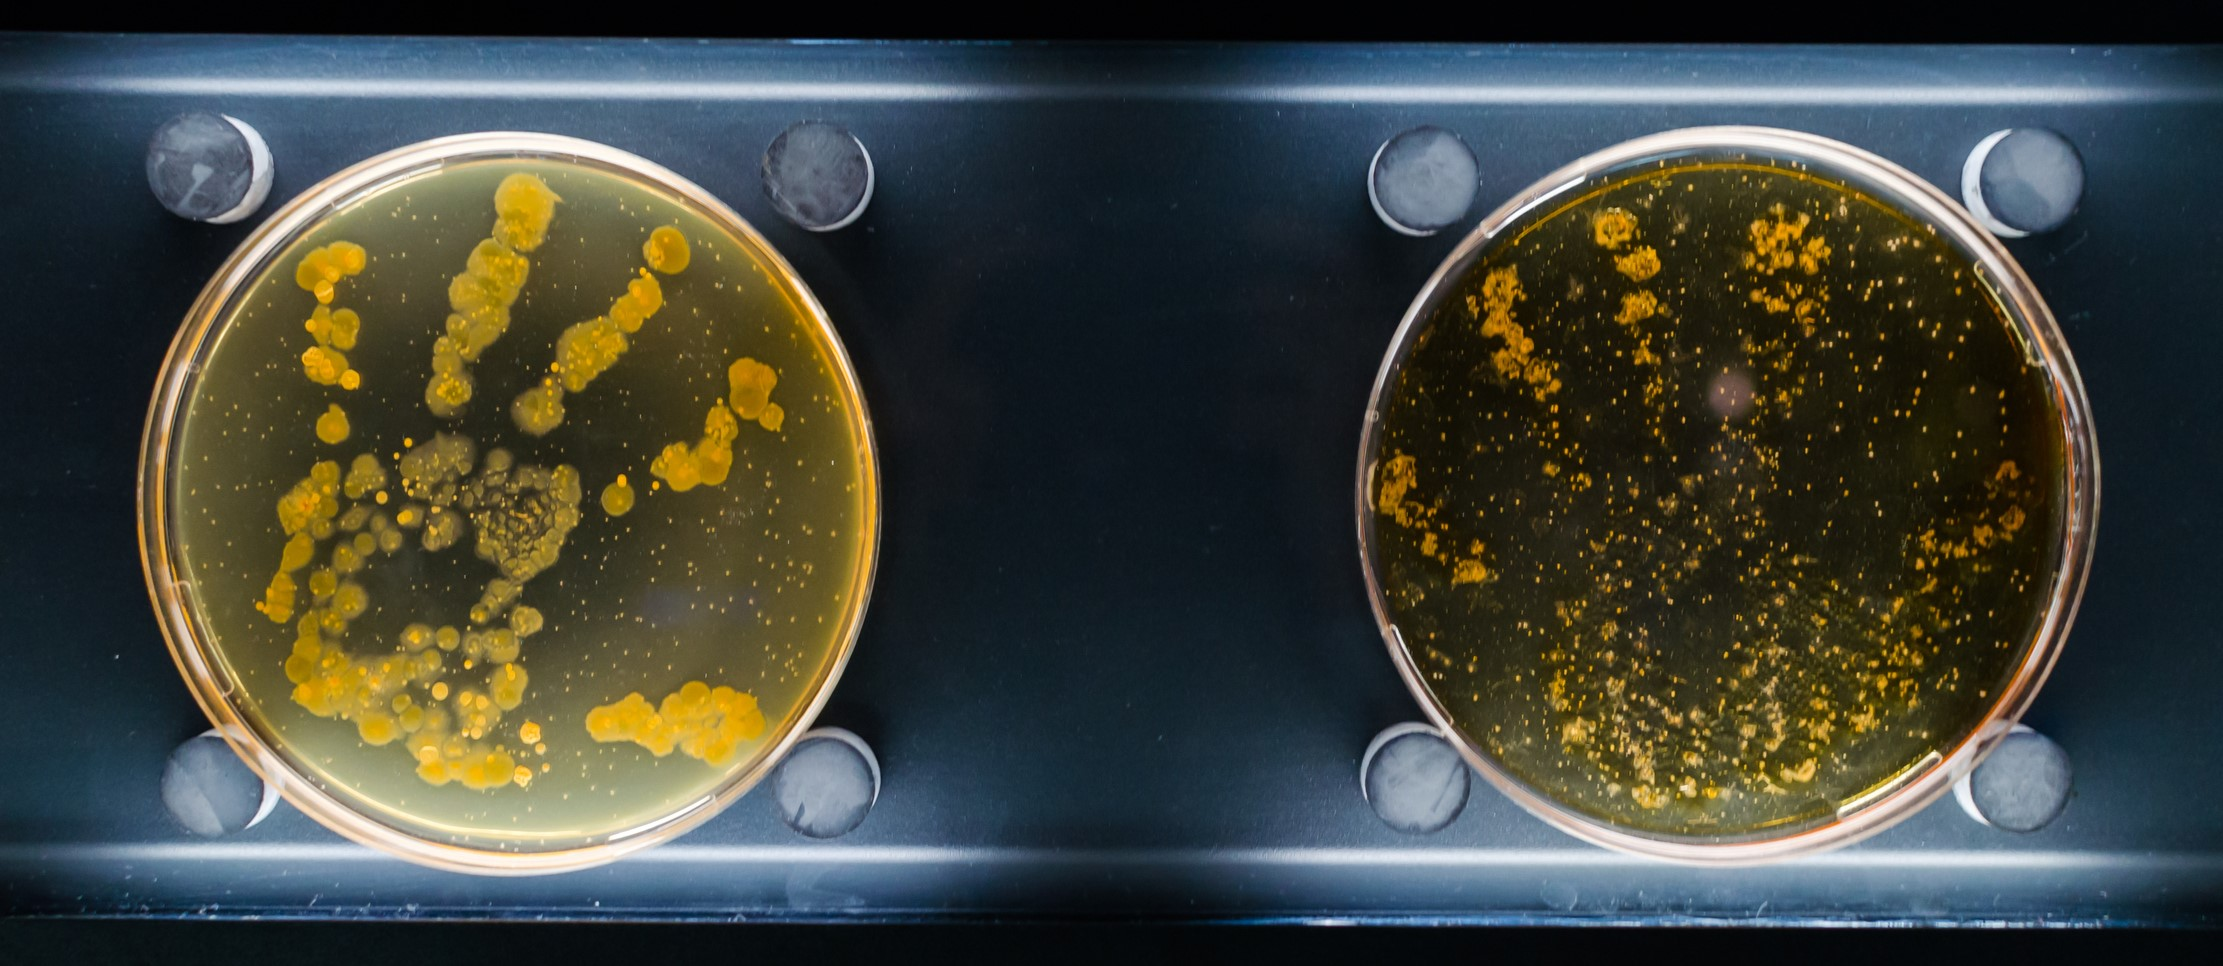 Unwashed and washed hand bacterias in petri dish.